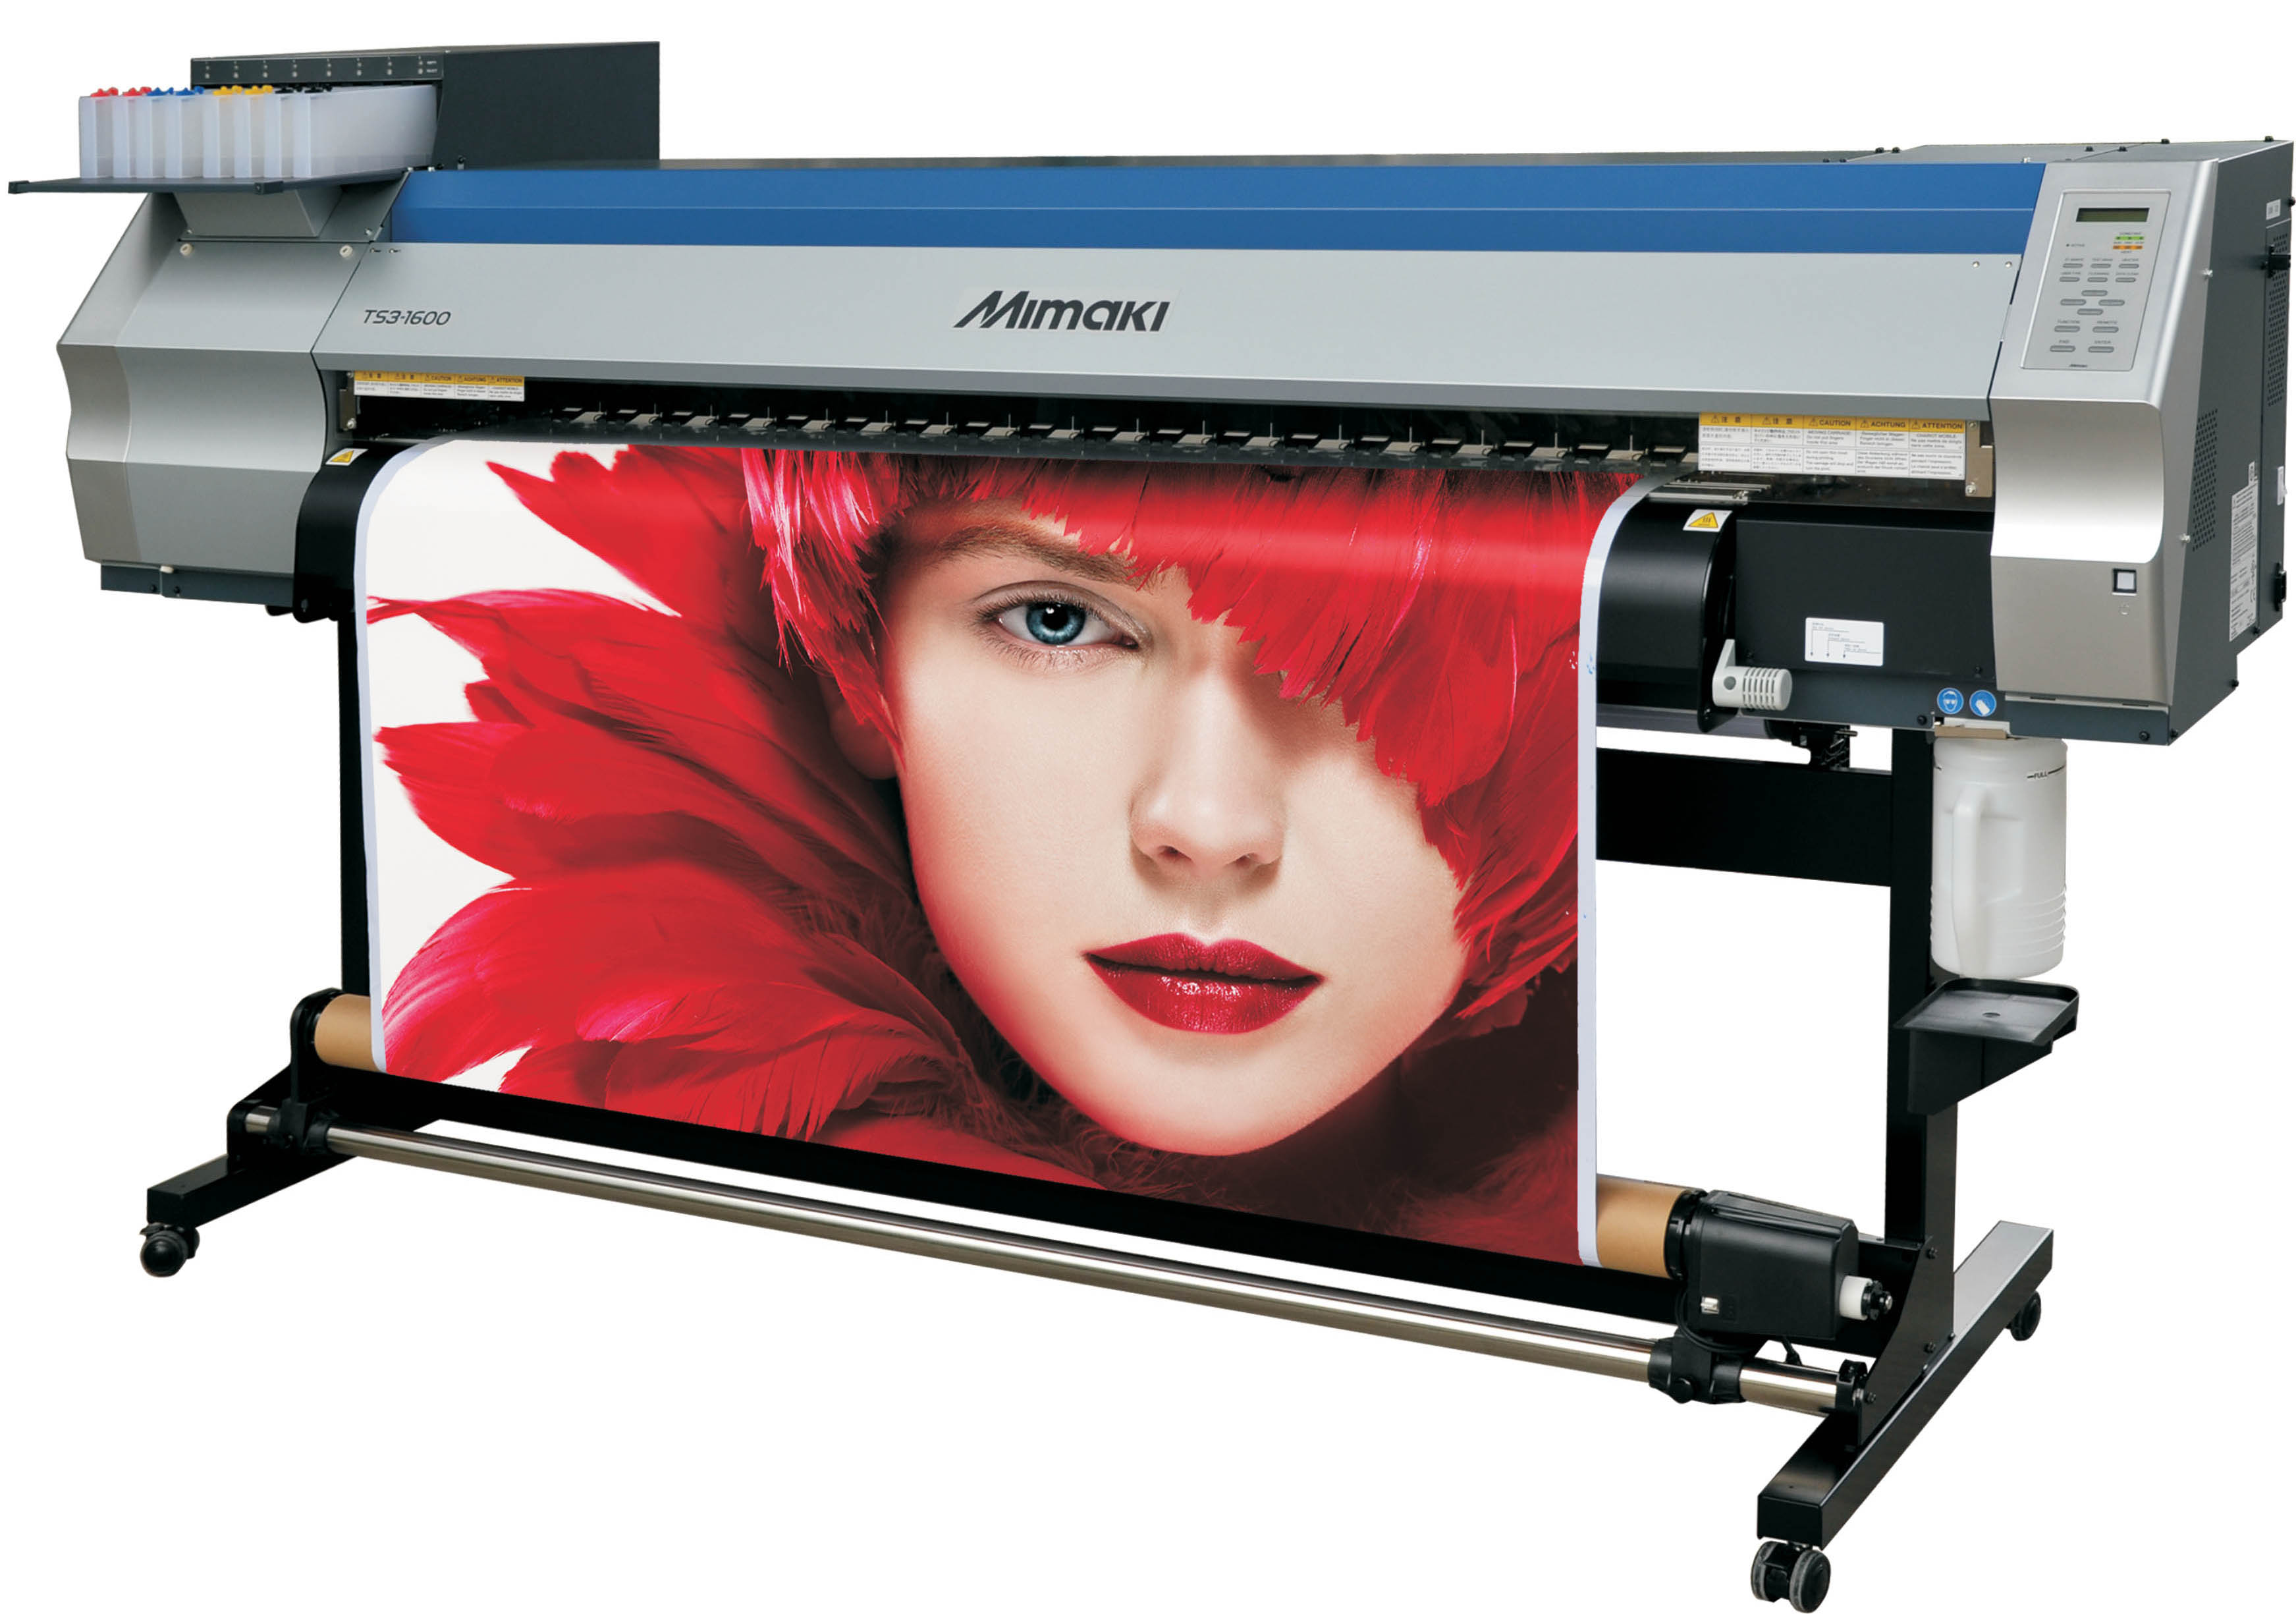 All About Digital Photos - Changing the DPI of a Digital Photo Digital photo printing dpi